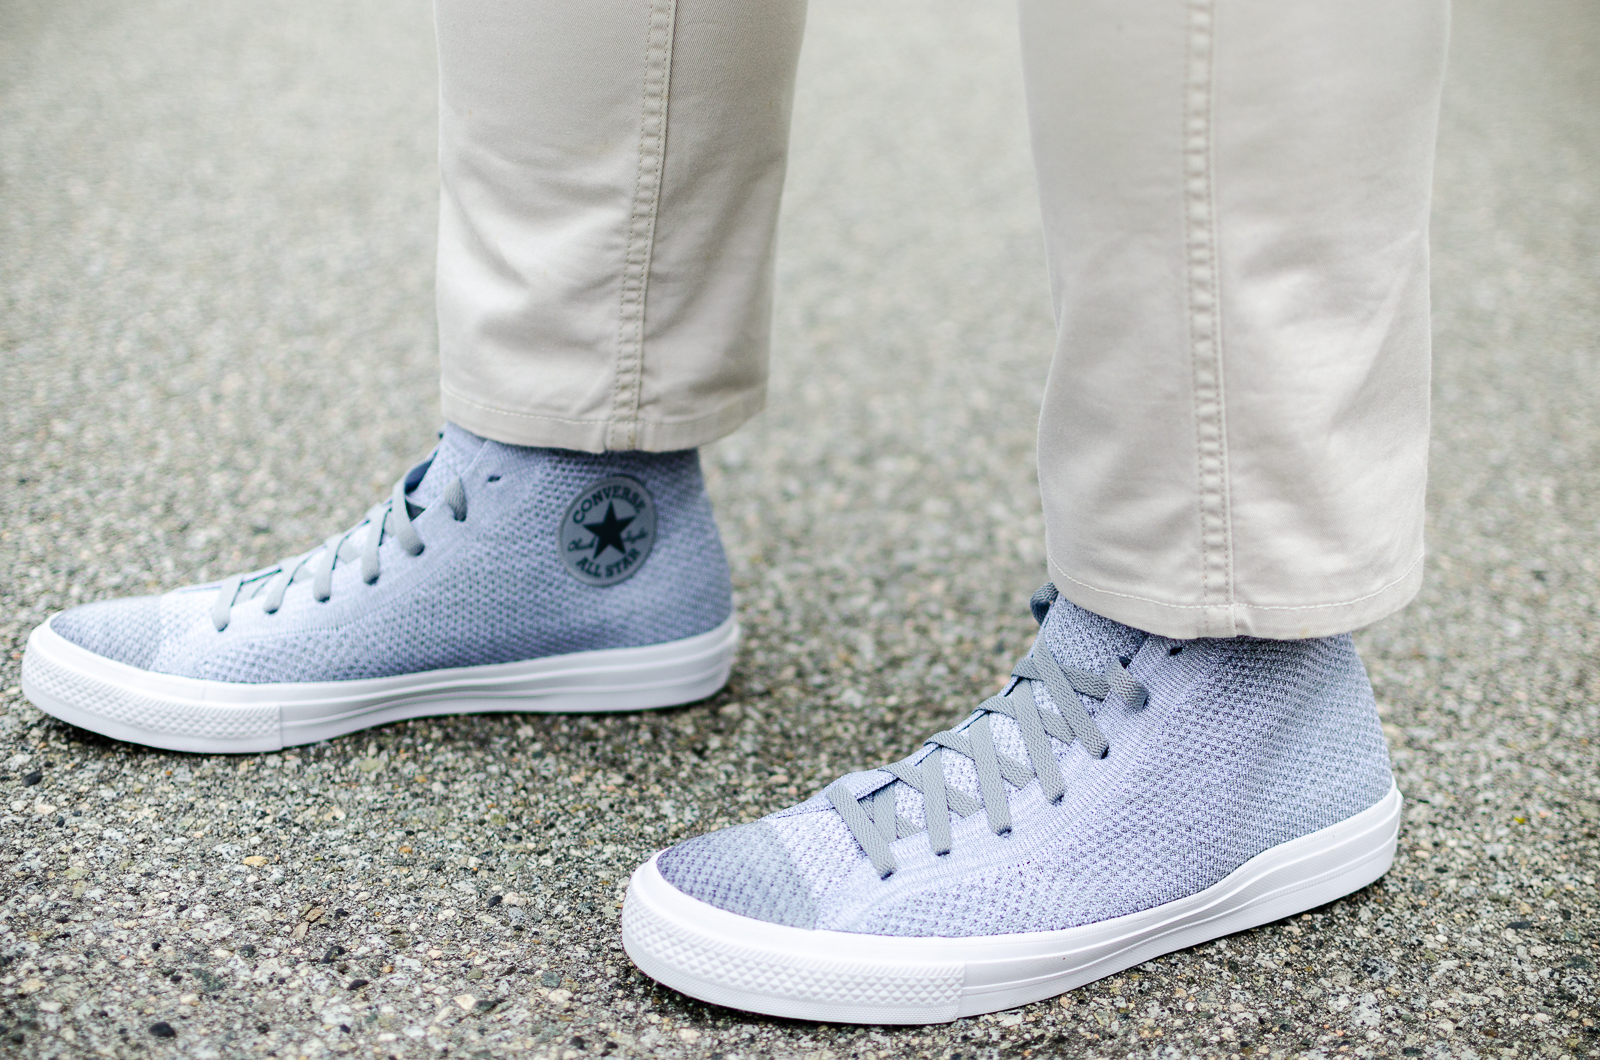 8c1bd440fd6f Converse Chuck Taylor All Star x Nike Flyknit  Perfect Summer ...